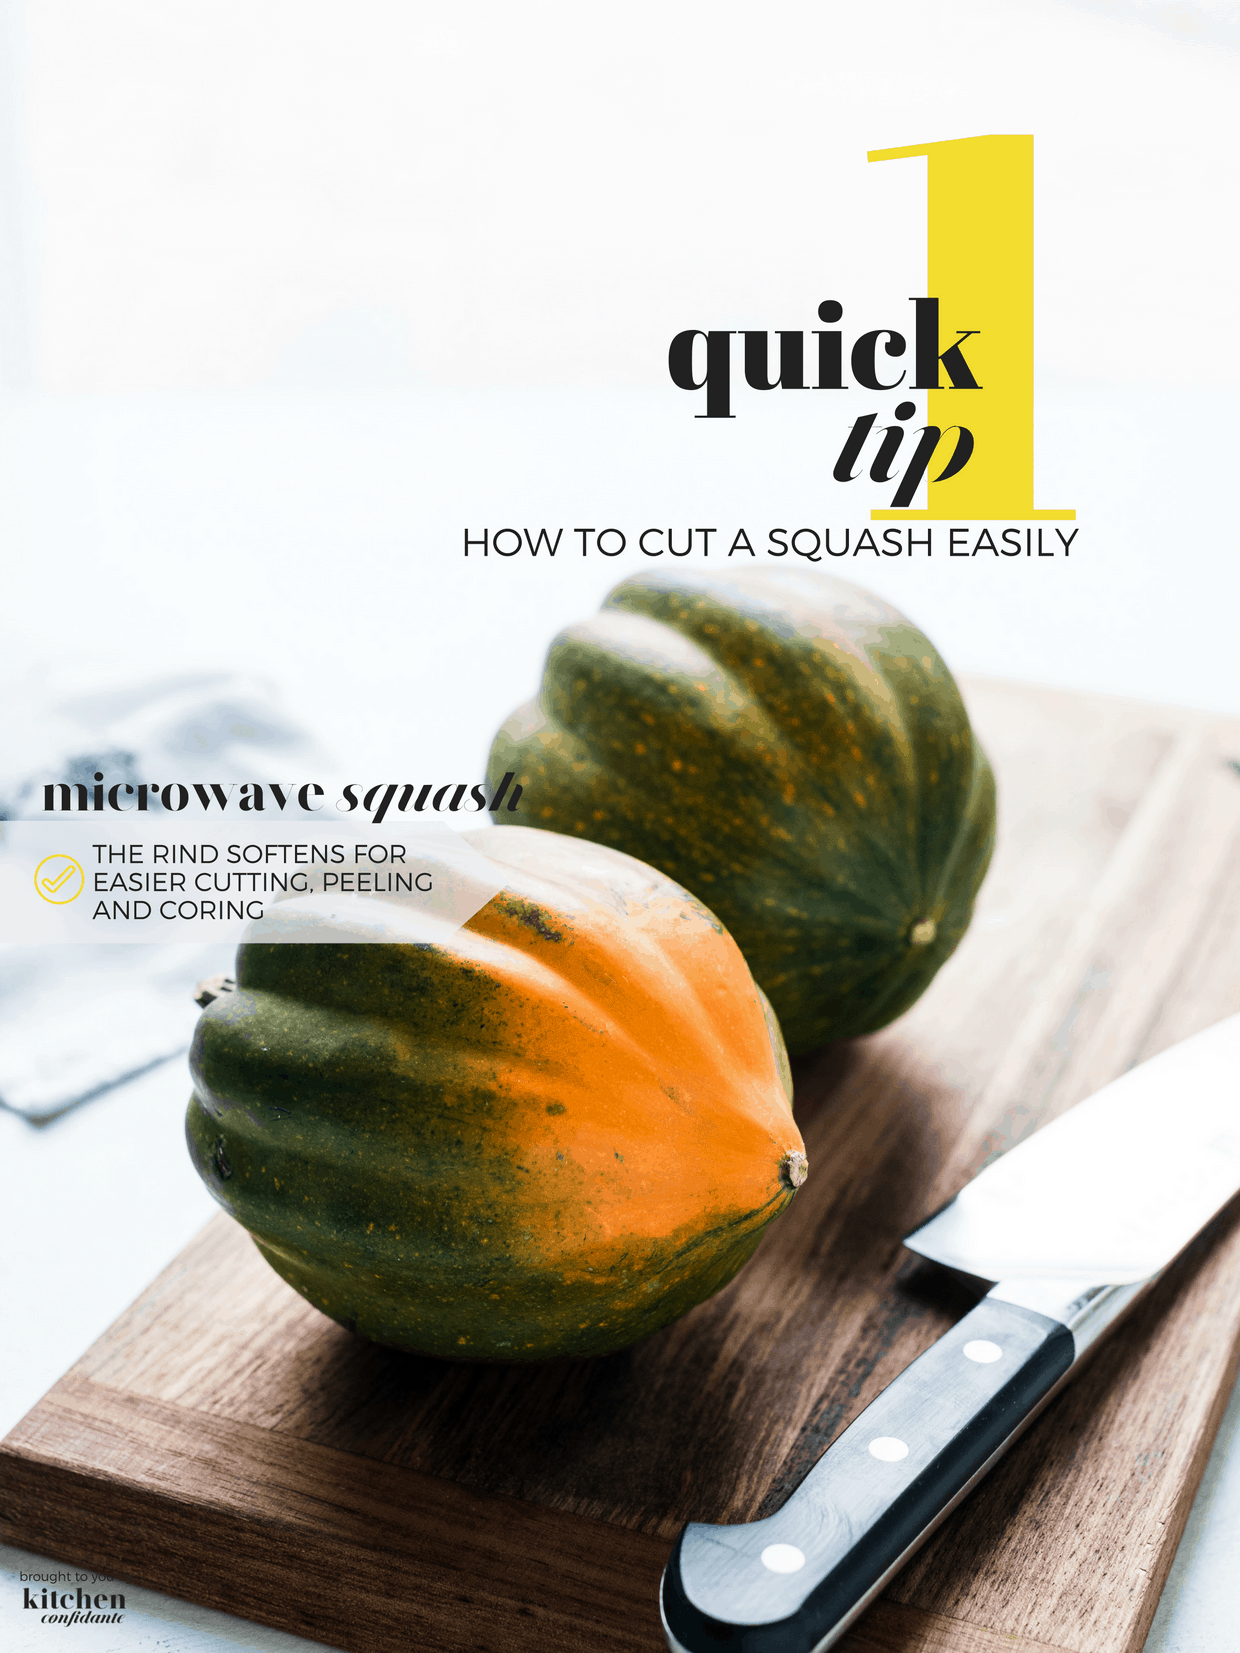 Two acorn squash on a wooden cutting board with a chef's knife.